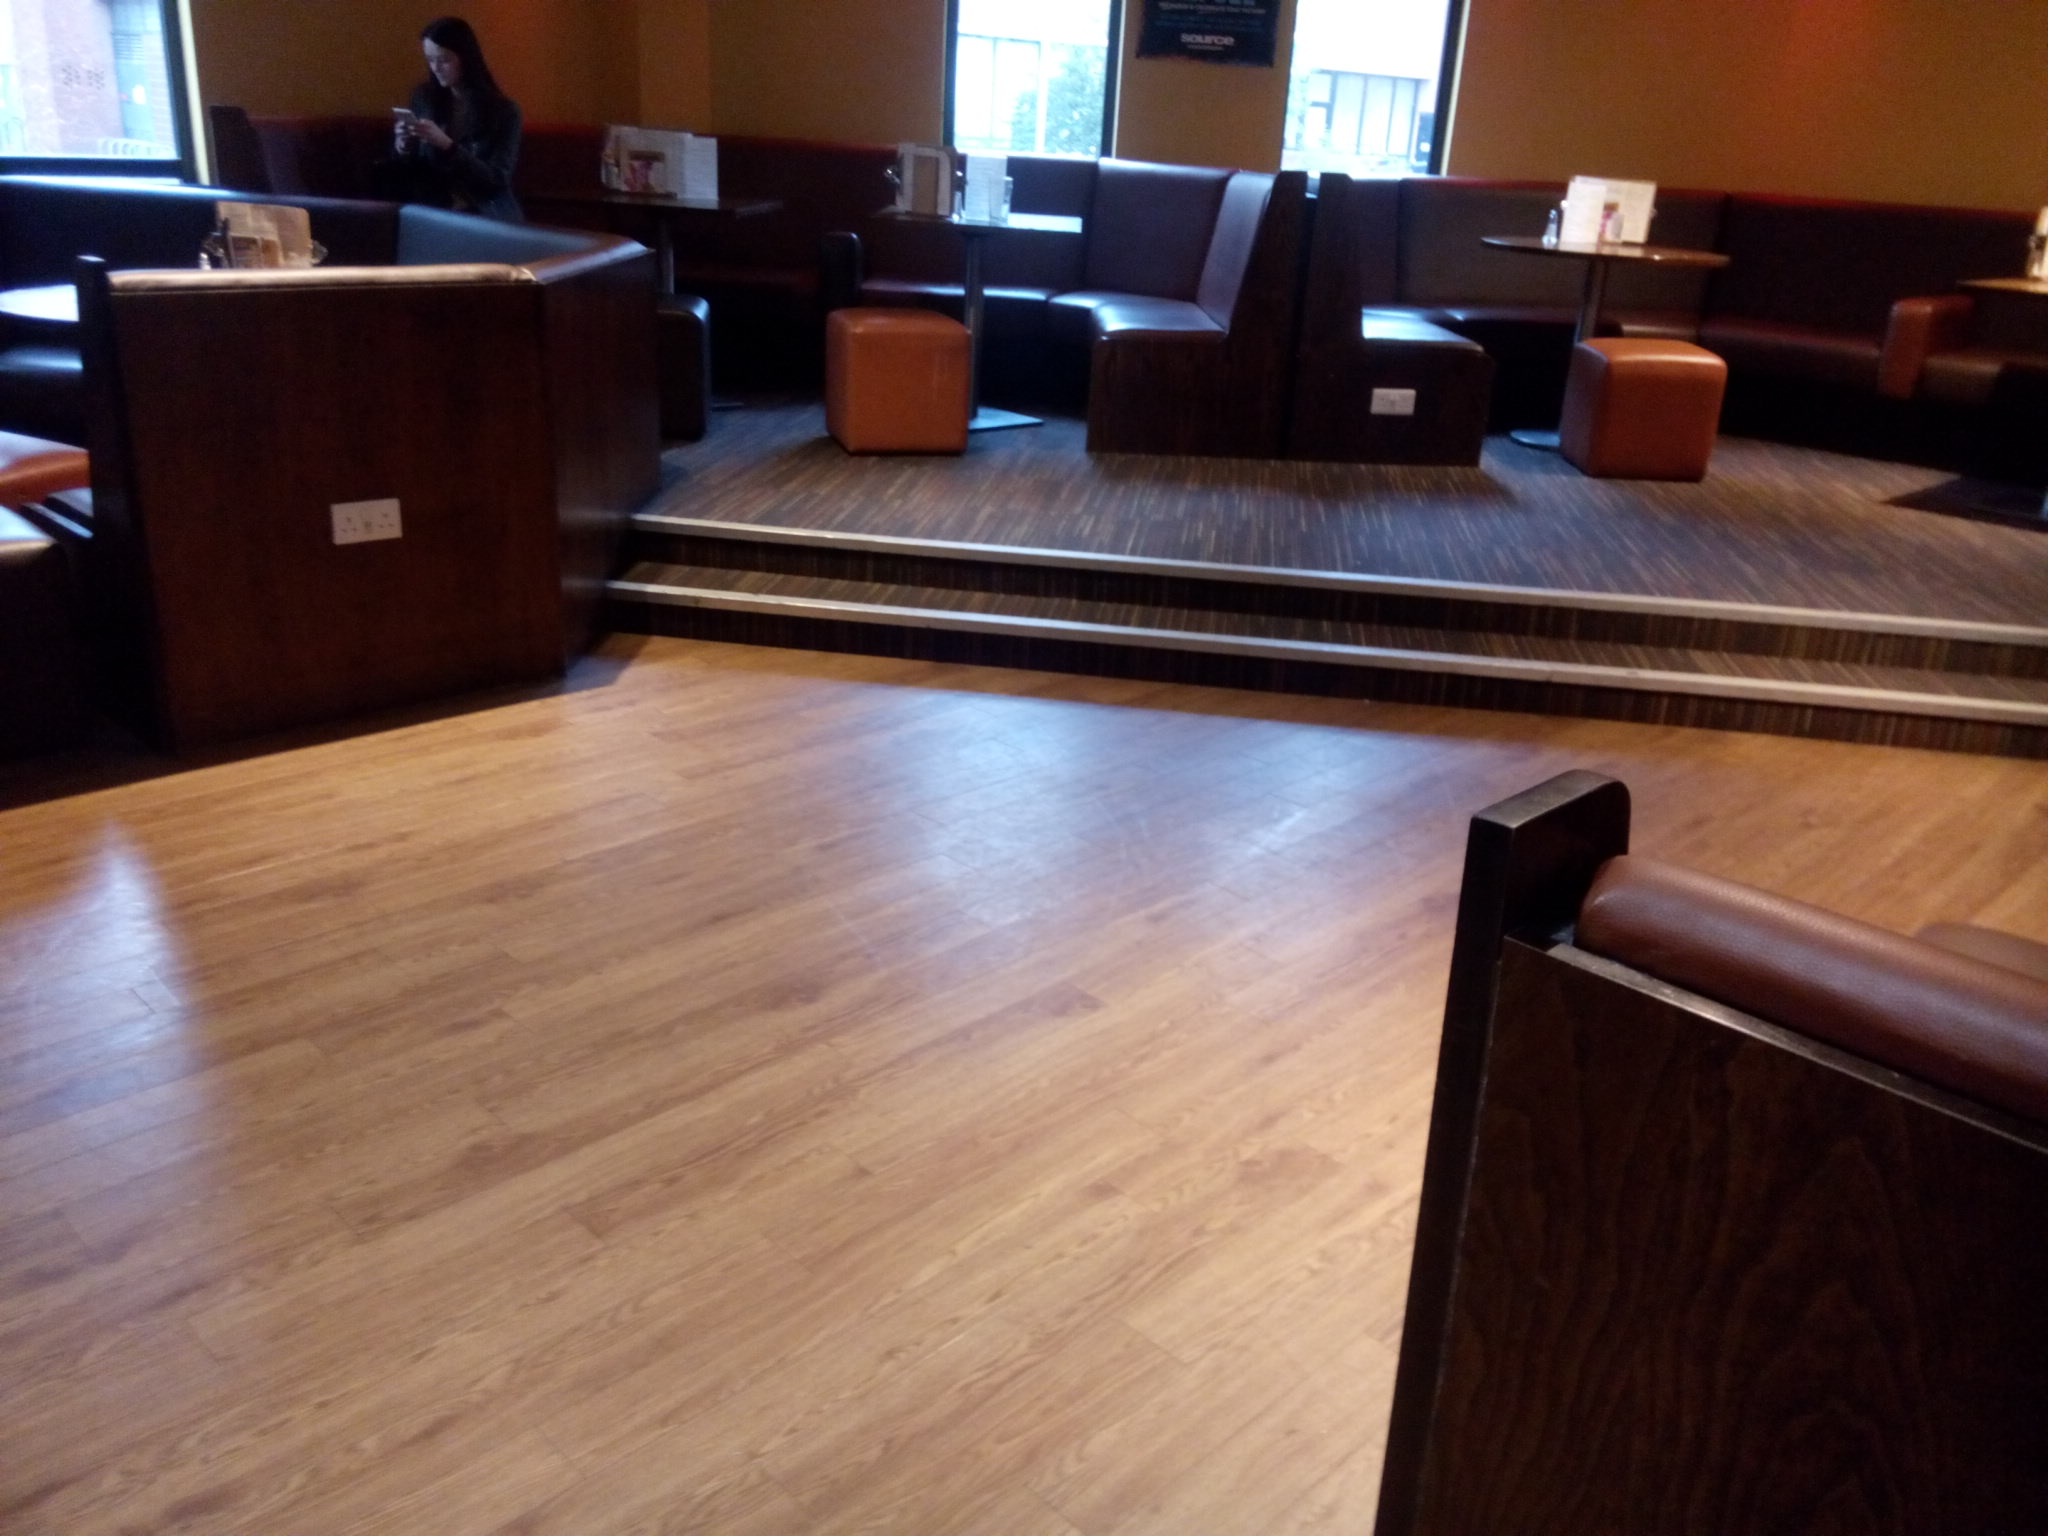 Bar area showing seating on a level surface, and up two small steps.